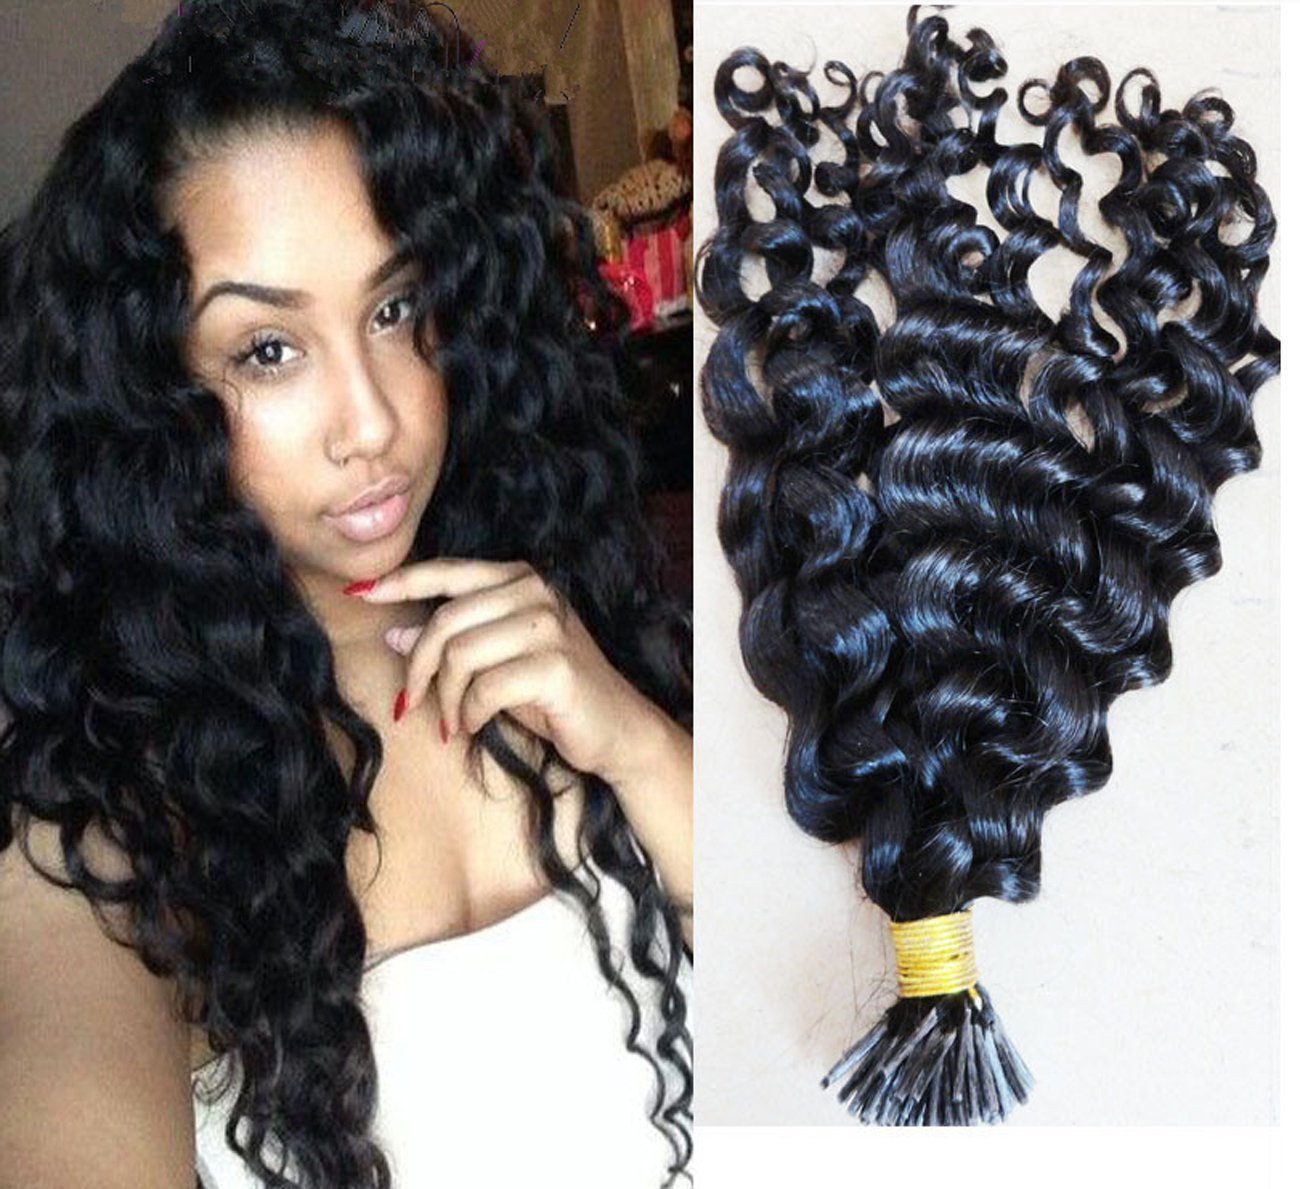 Cheap Curly Pre Bonded Hair Extensions Find Curly Pre Bonded Hair